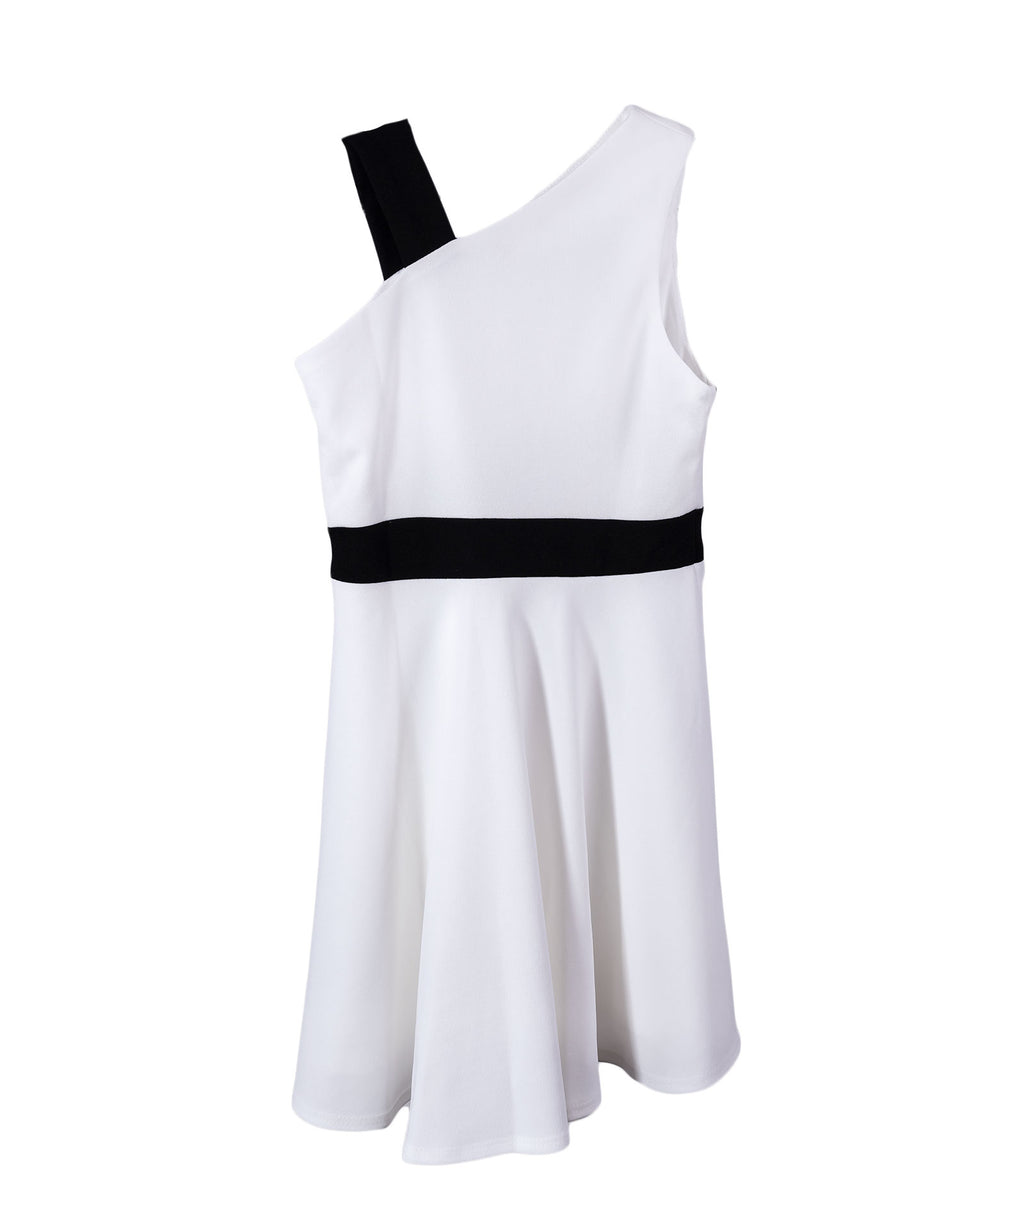 Sally Miller Girls Blaine Dress